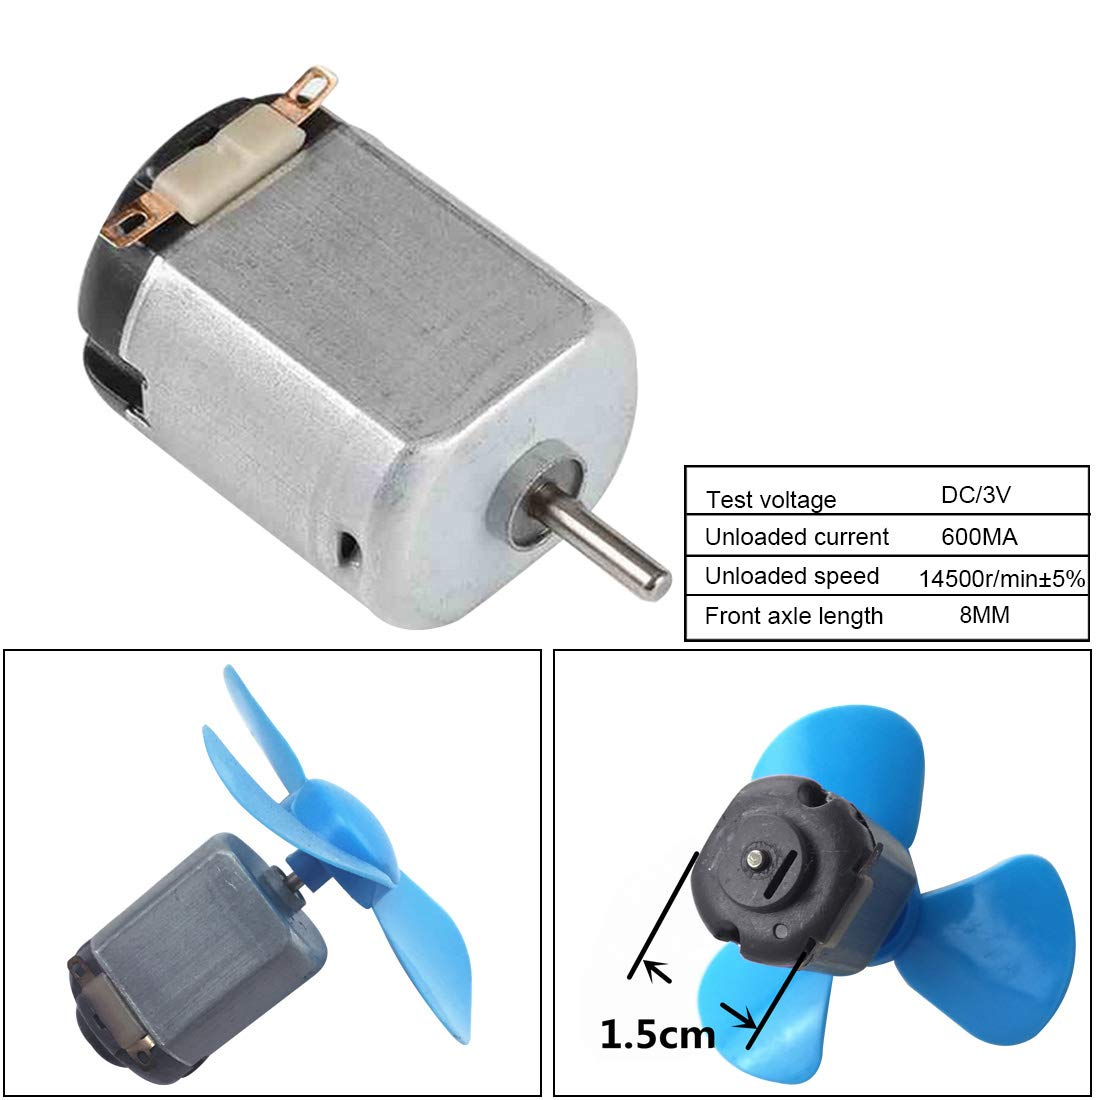 Loweryeah 130 DC Motor Strong Carbon Brush DC 3V 14500 RPM Cars Toys Electric Motor, High Speed Torque DIY Remote Control Toy Car Hobby Motor, Metal Car Engine Motor Kit for Toys